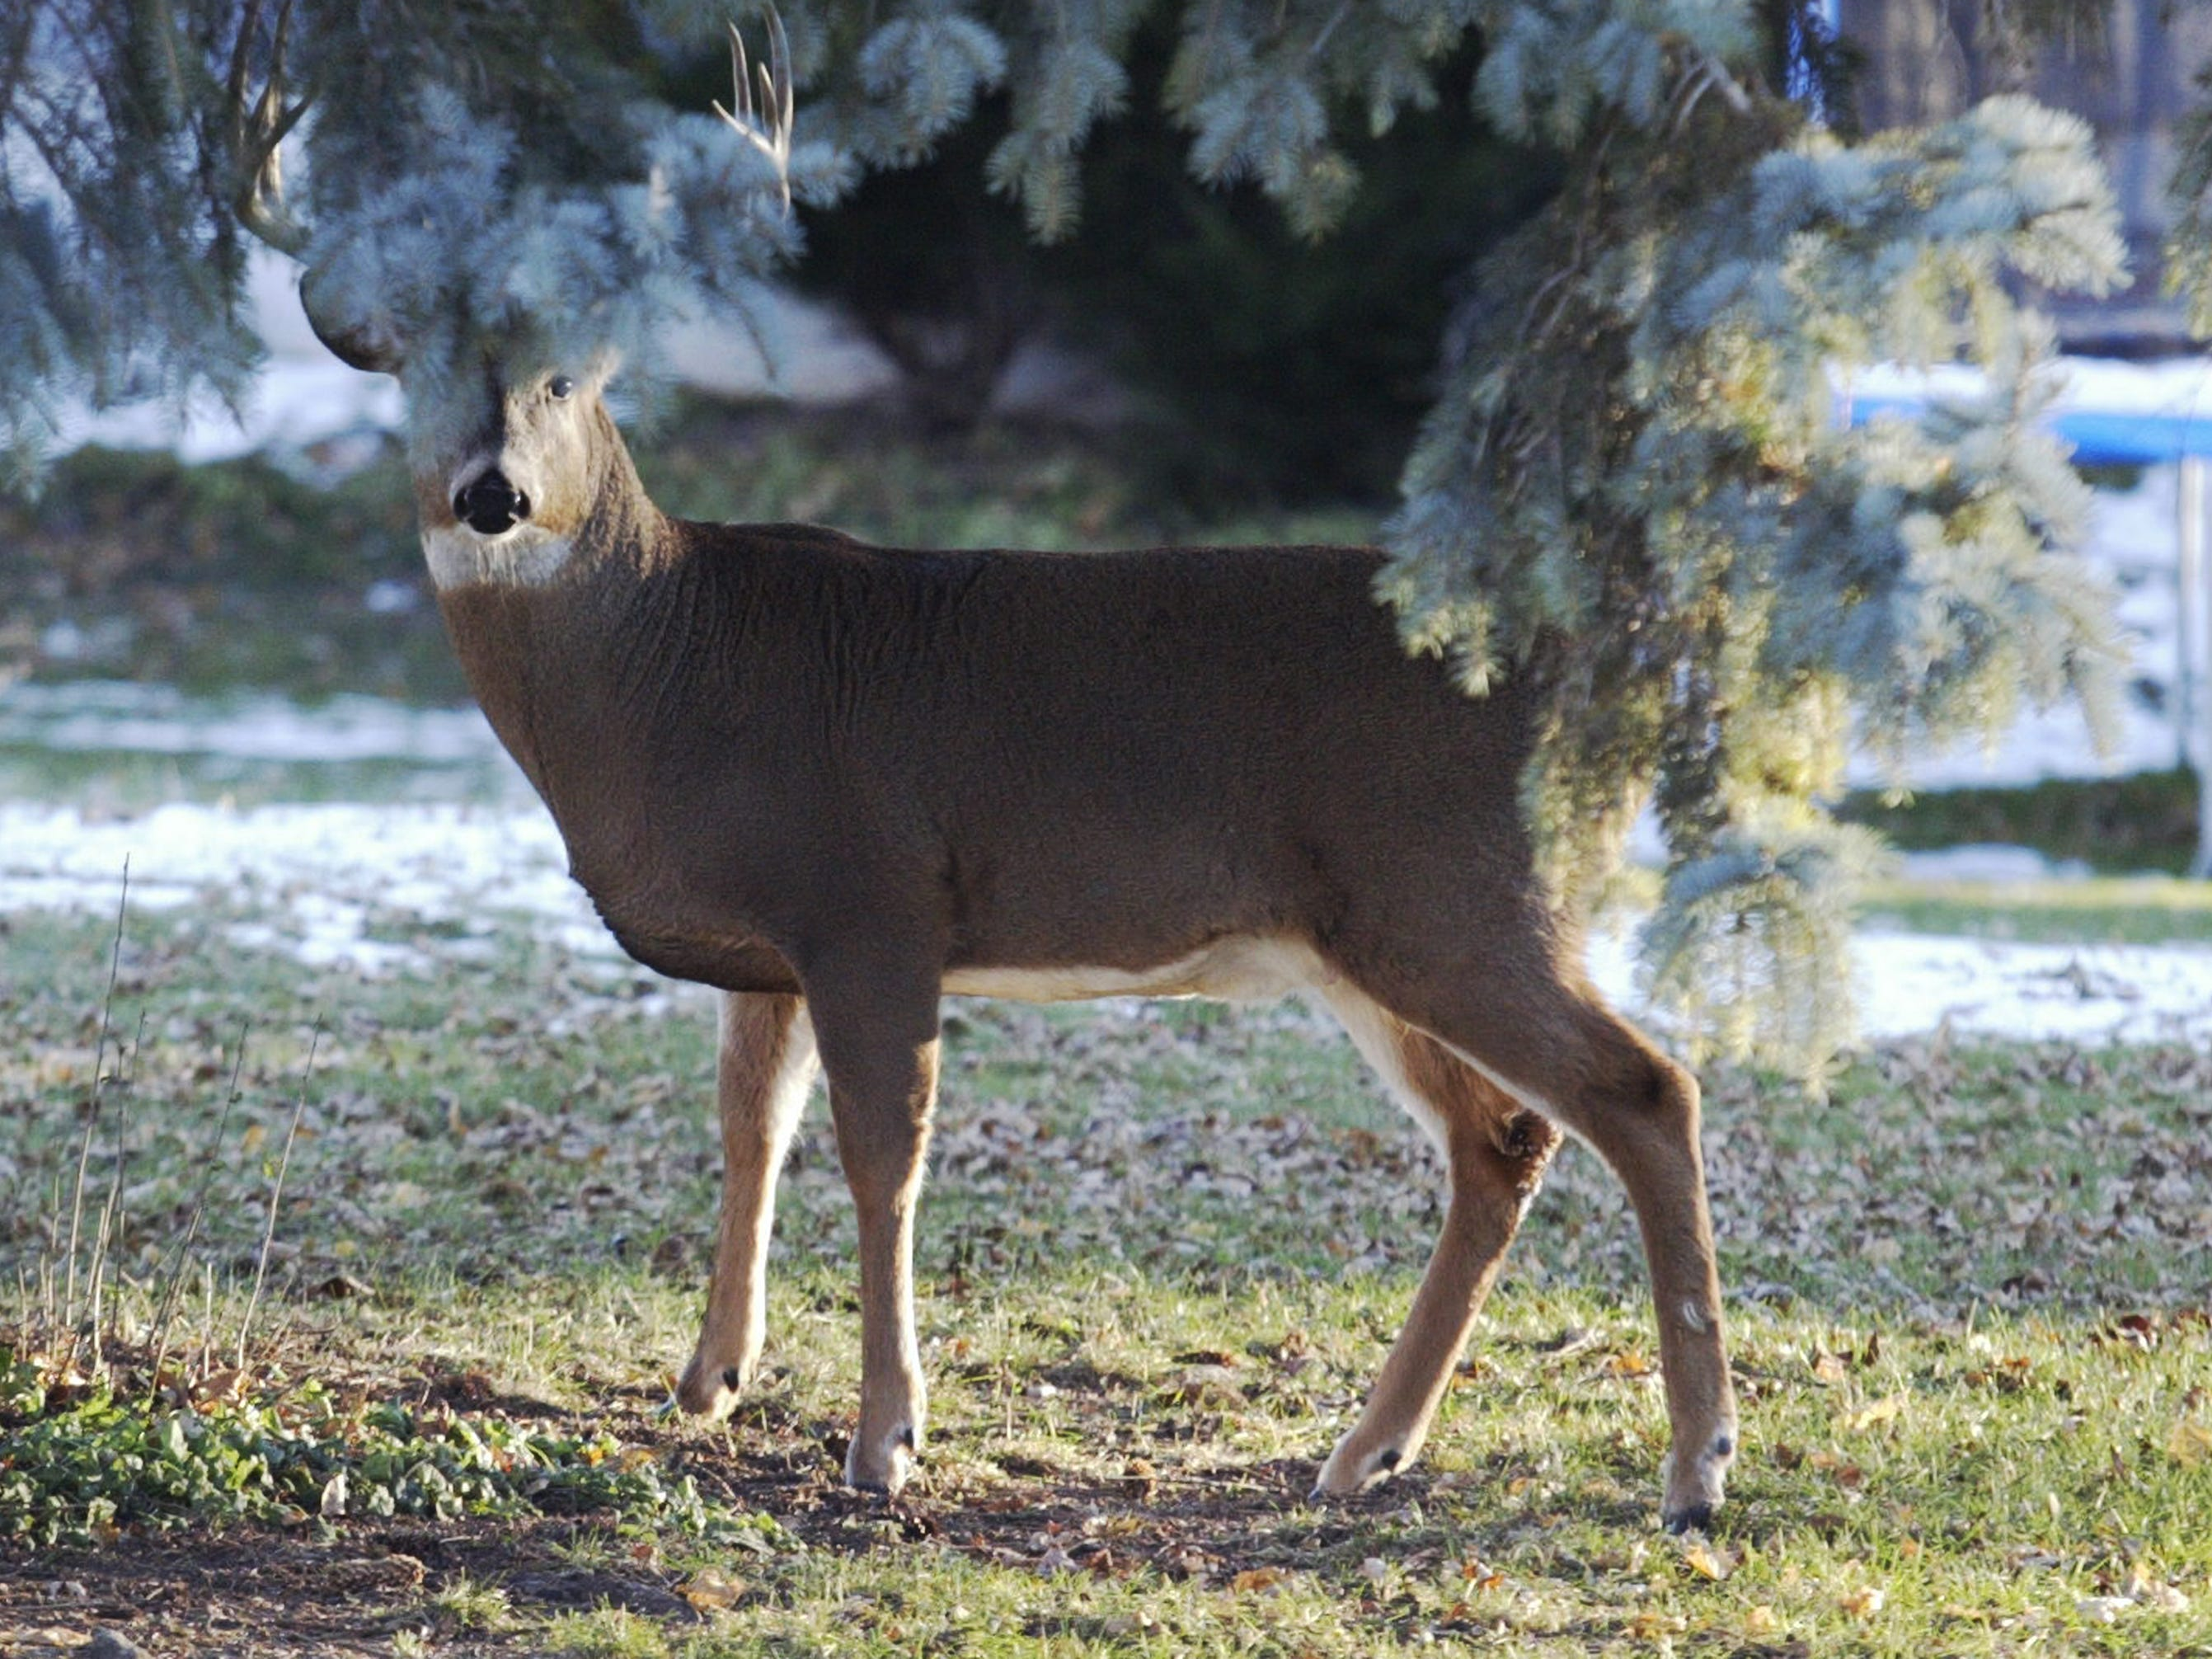 A buck peers through pine branches in the backyard of a Sheboygan home in the 1000 block of N. 23rd Street, Wednesday November 14, 2018, in Sheboygan, Wis.